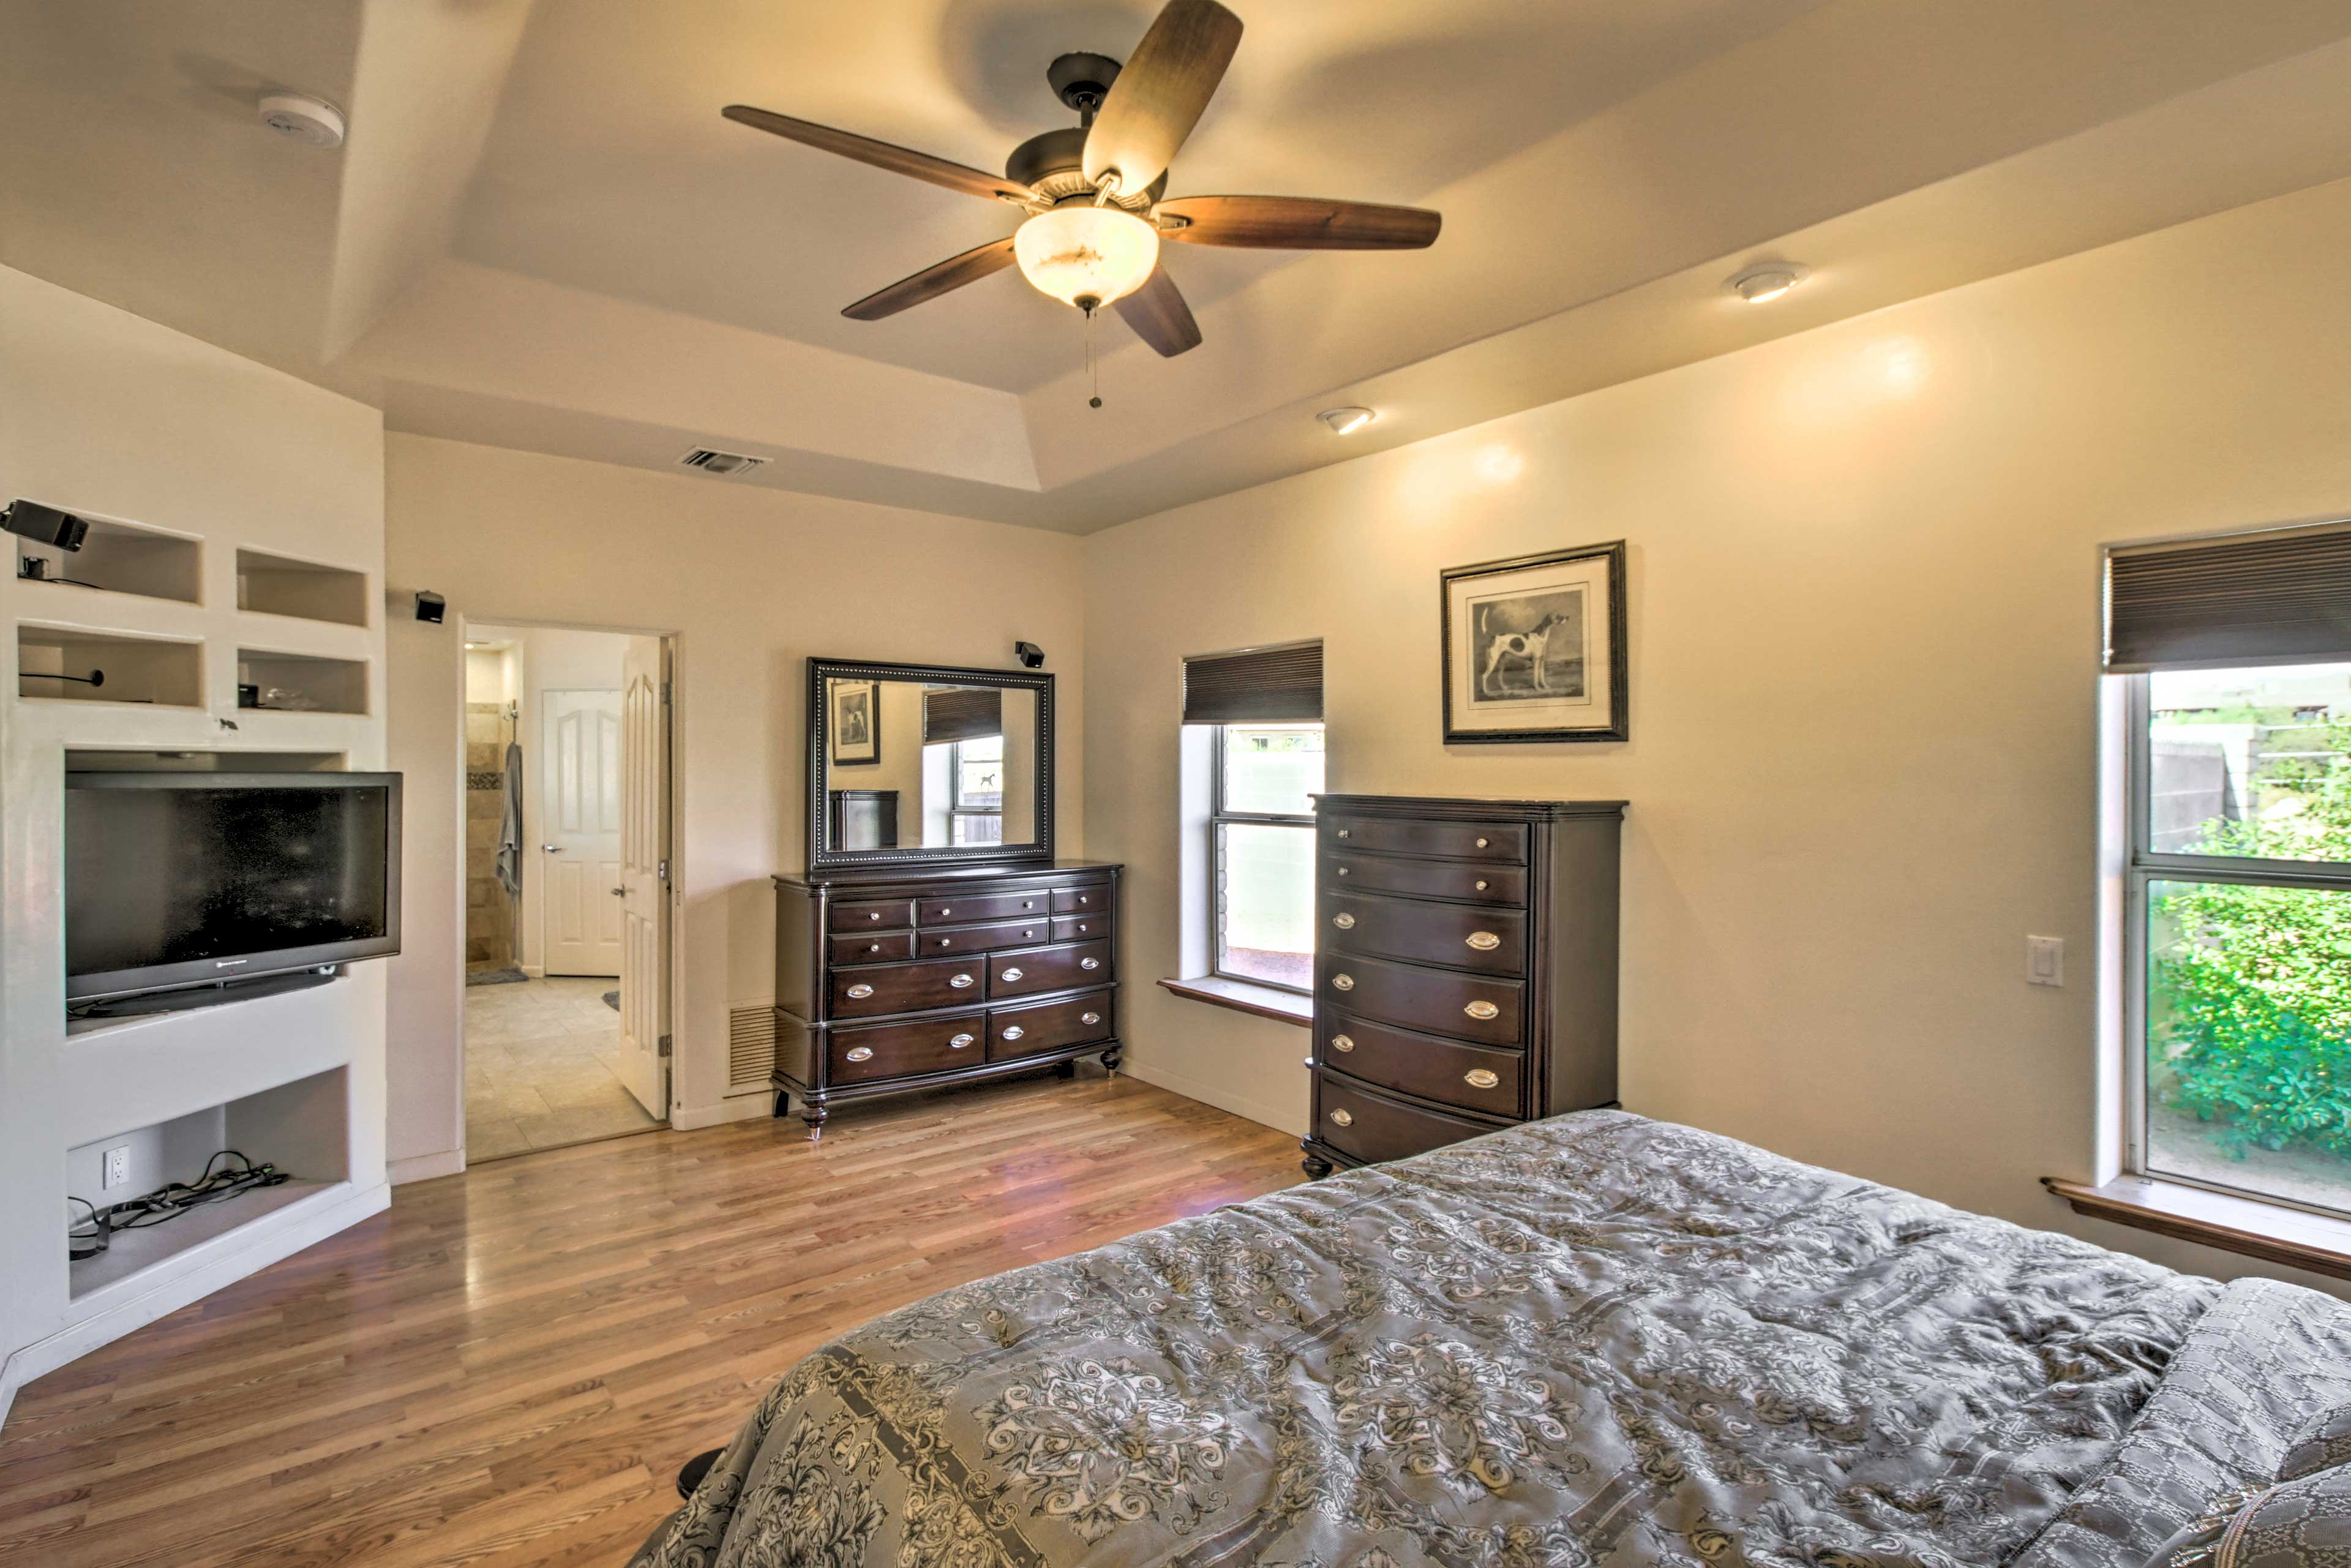 There's ample space for you and your loved one to unpack here.